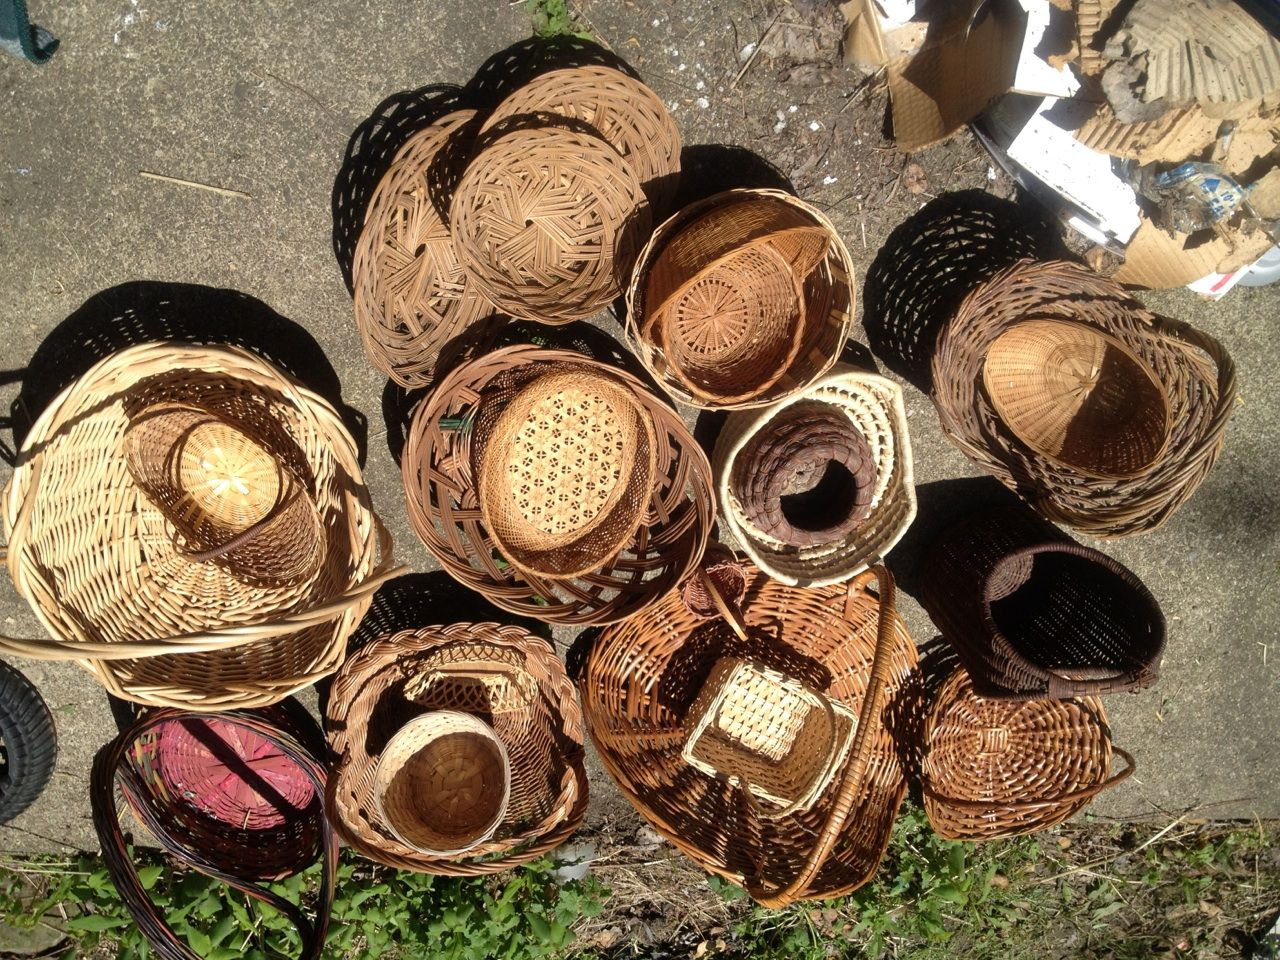 Tons of baskets to choose from - all shapes and sizes at very reasonable prices.